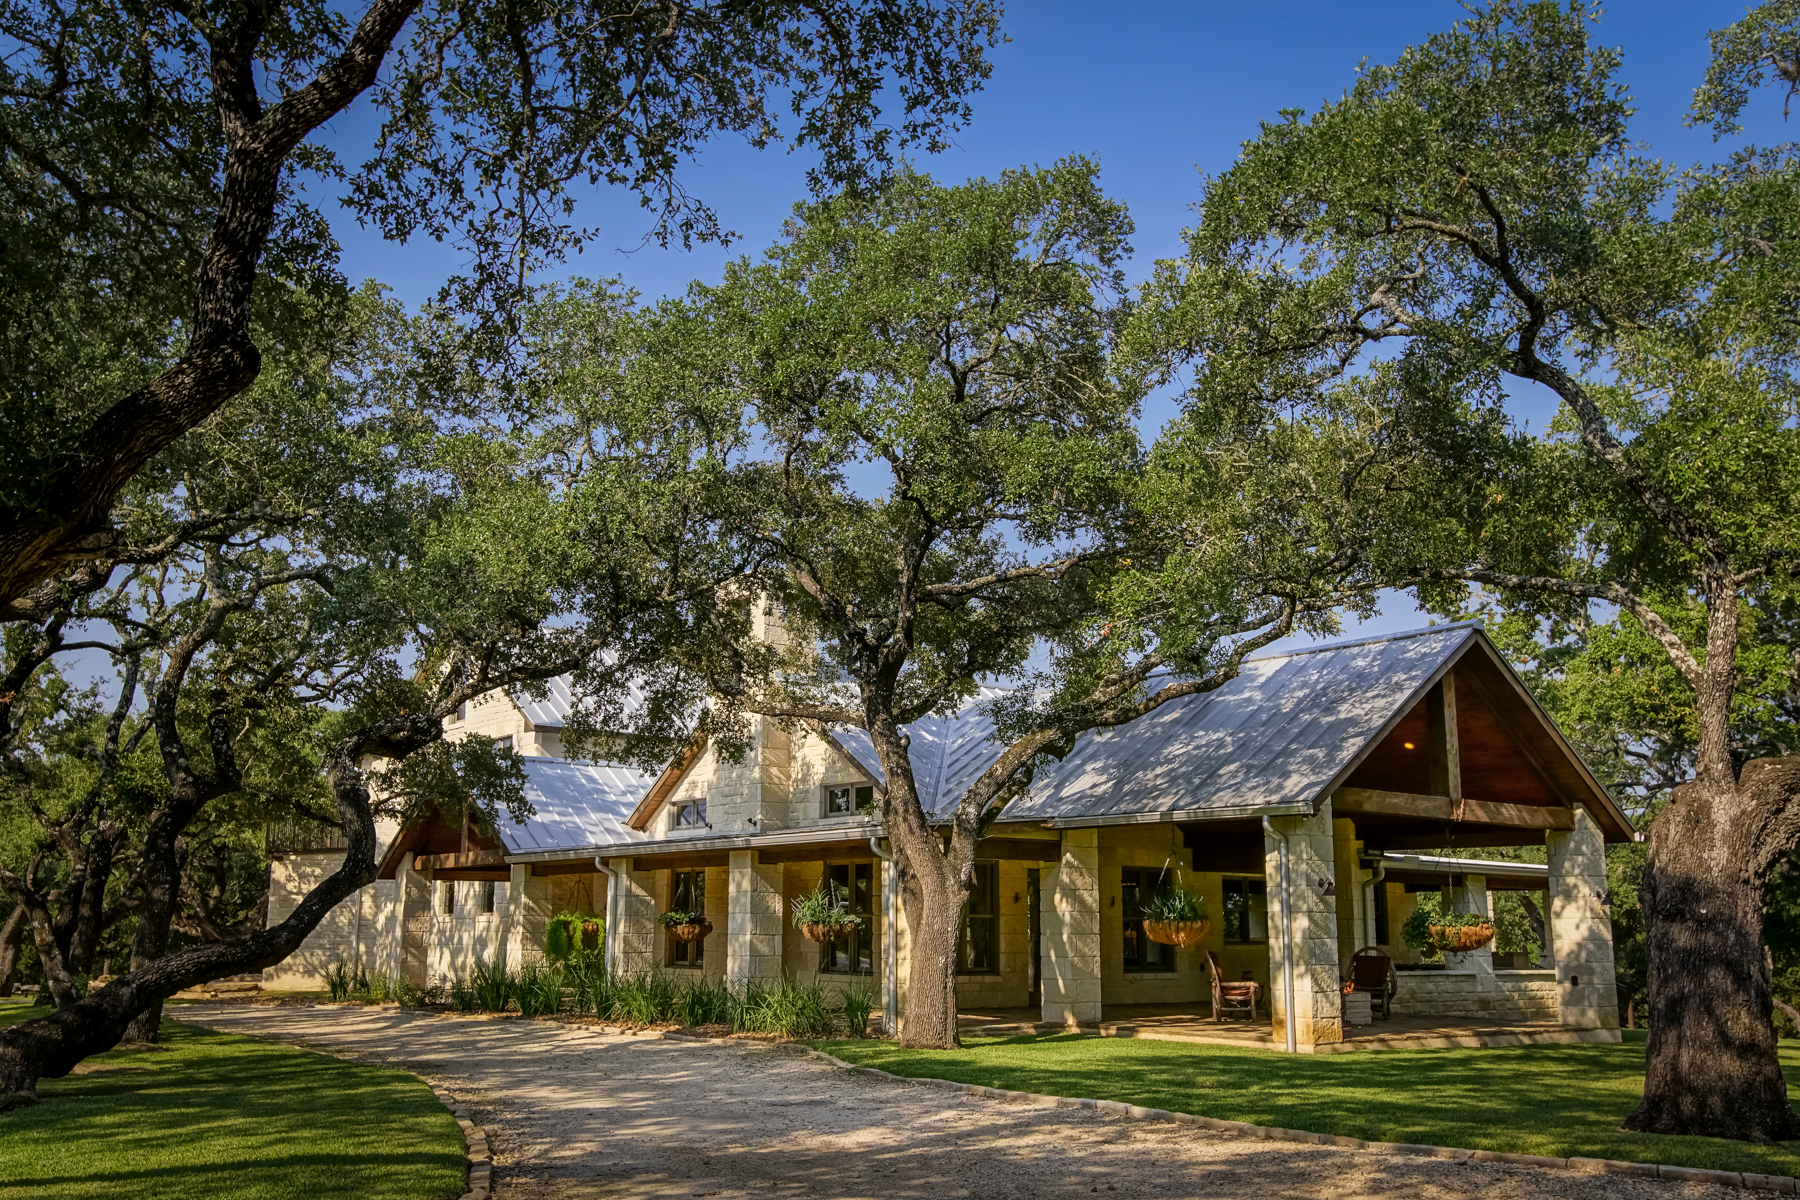 Single Family Home for Sale at Spectacular Estate in Boerne 35 Old San Antonio Rd Boerne, Texas 78006 United States